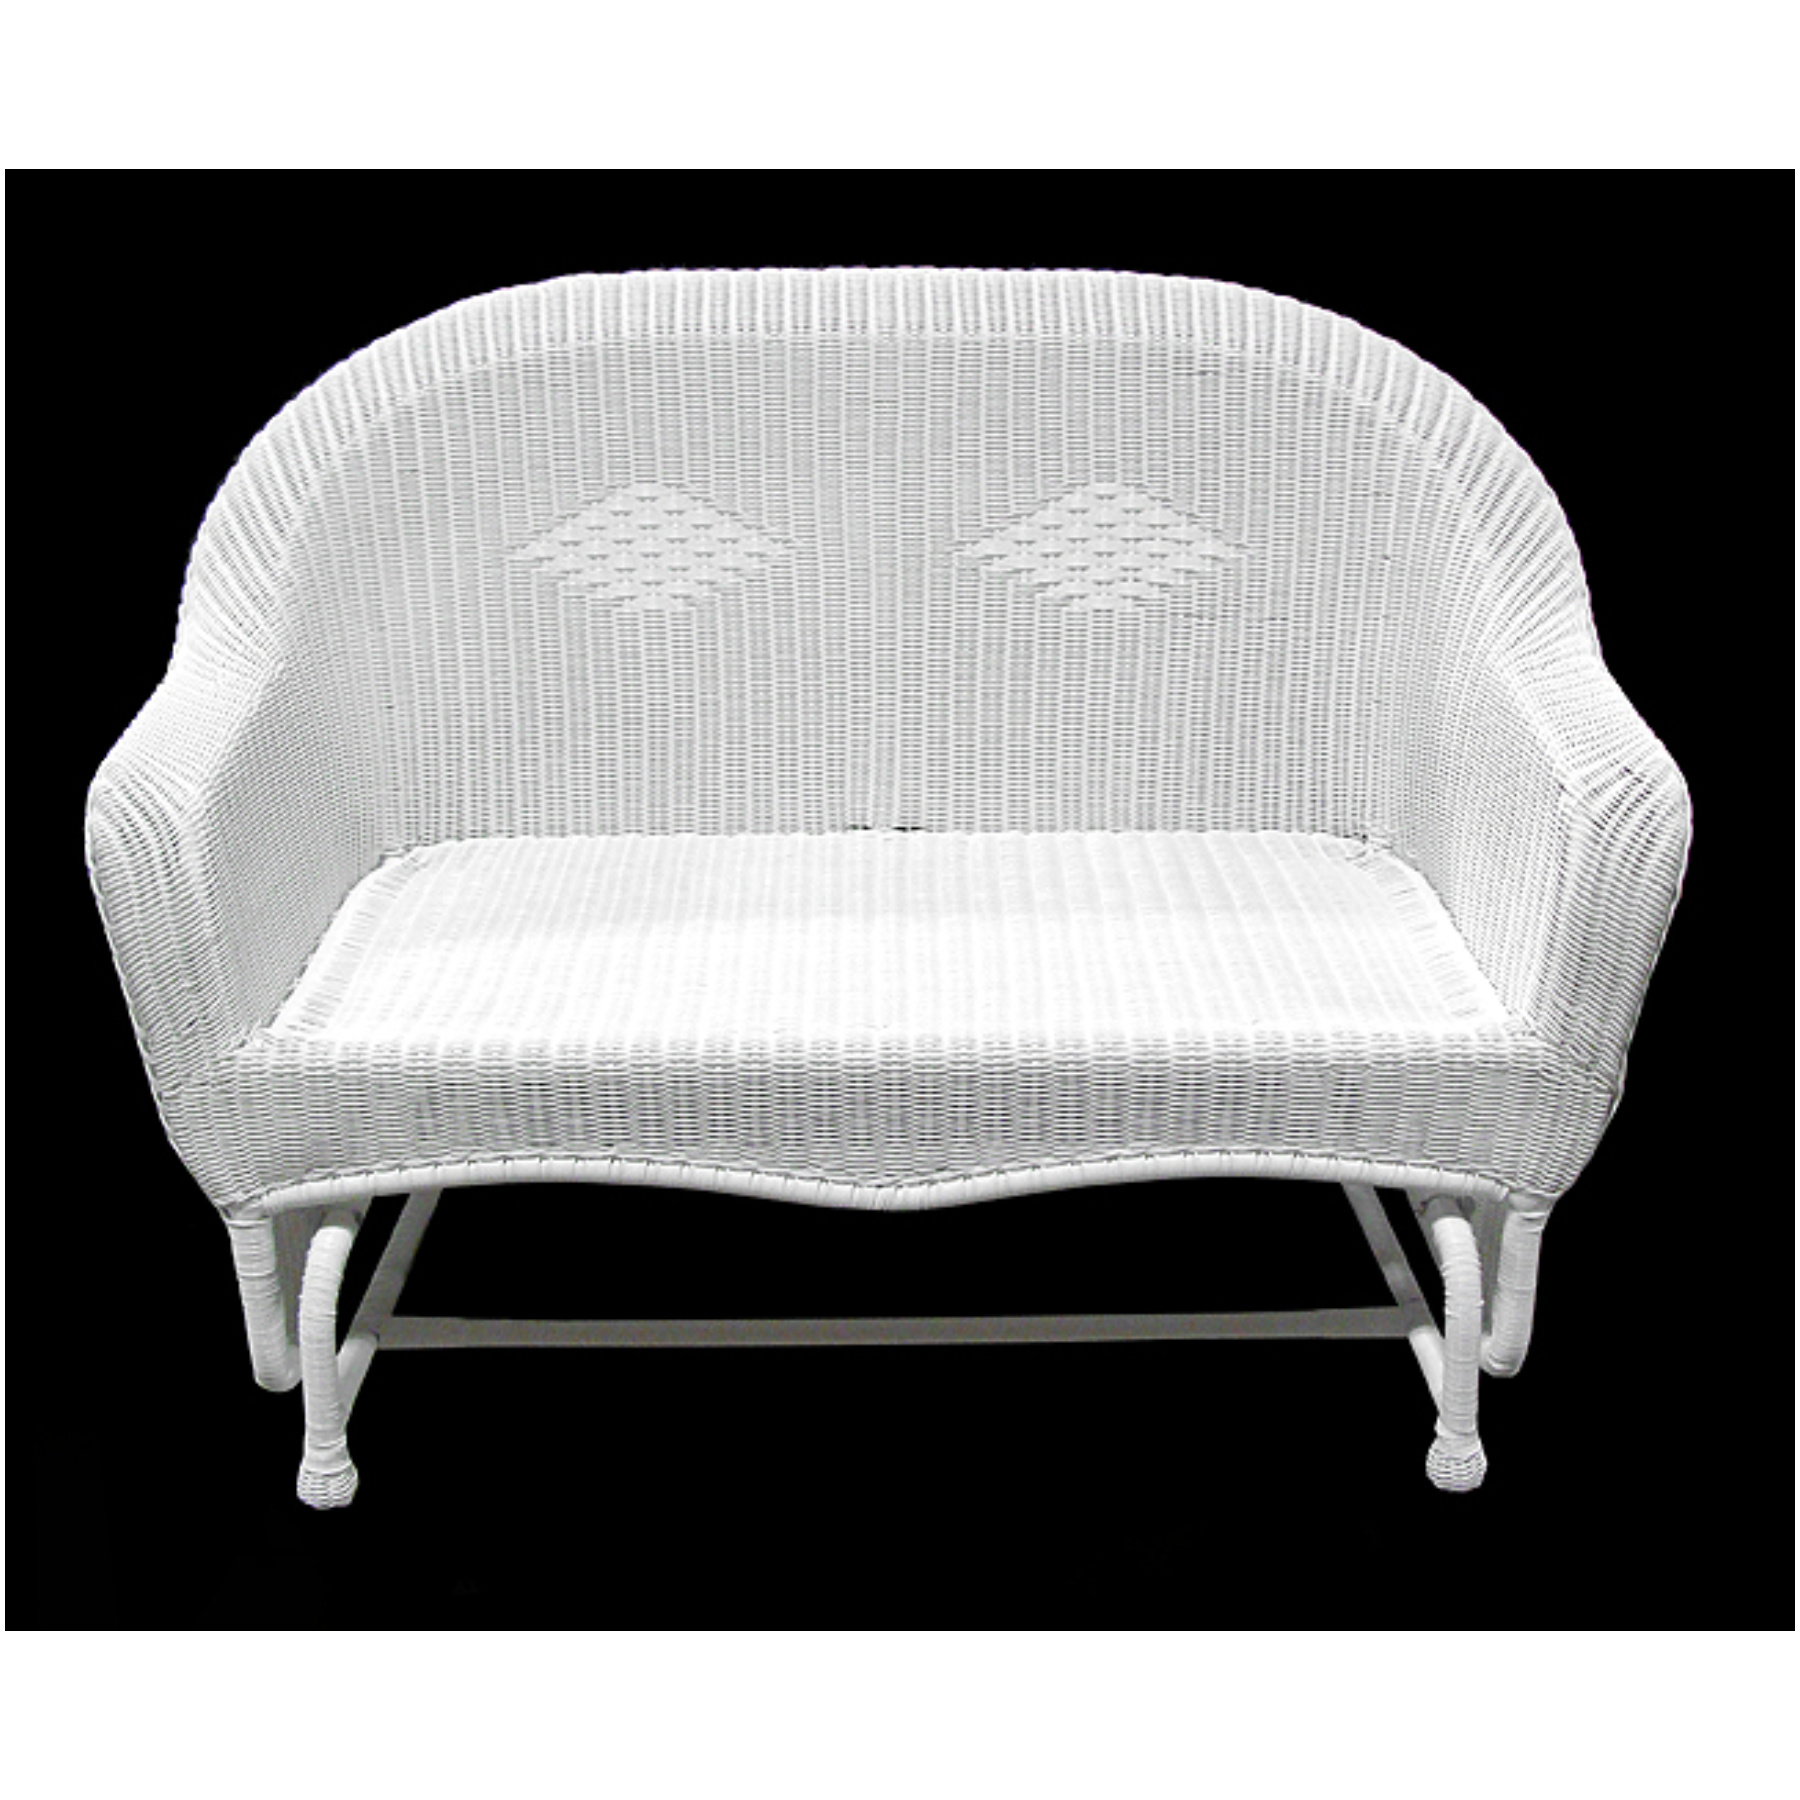 Image of: White Wicker Patio Chair Ideas